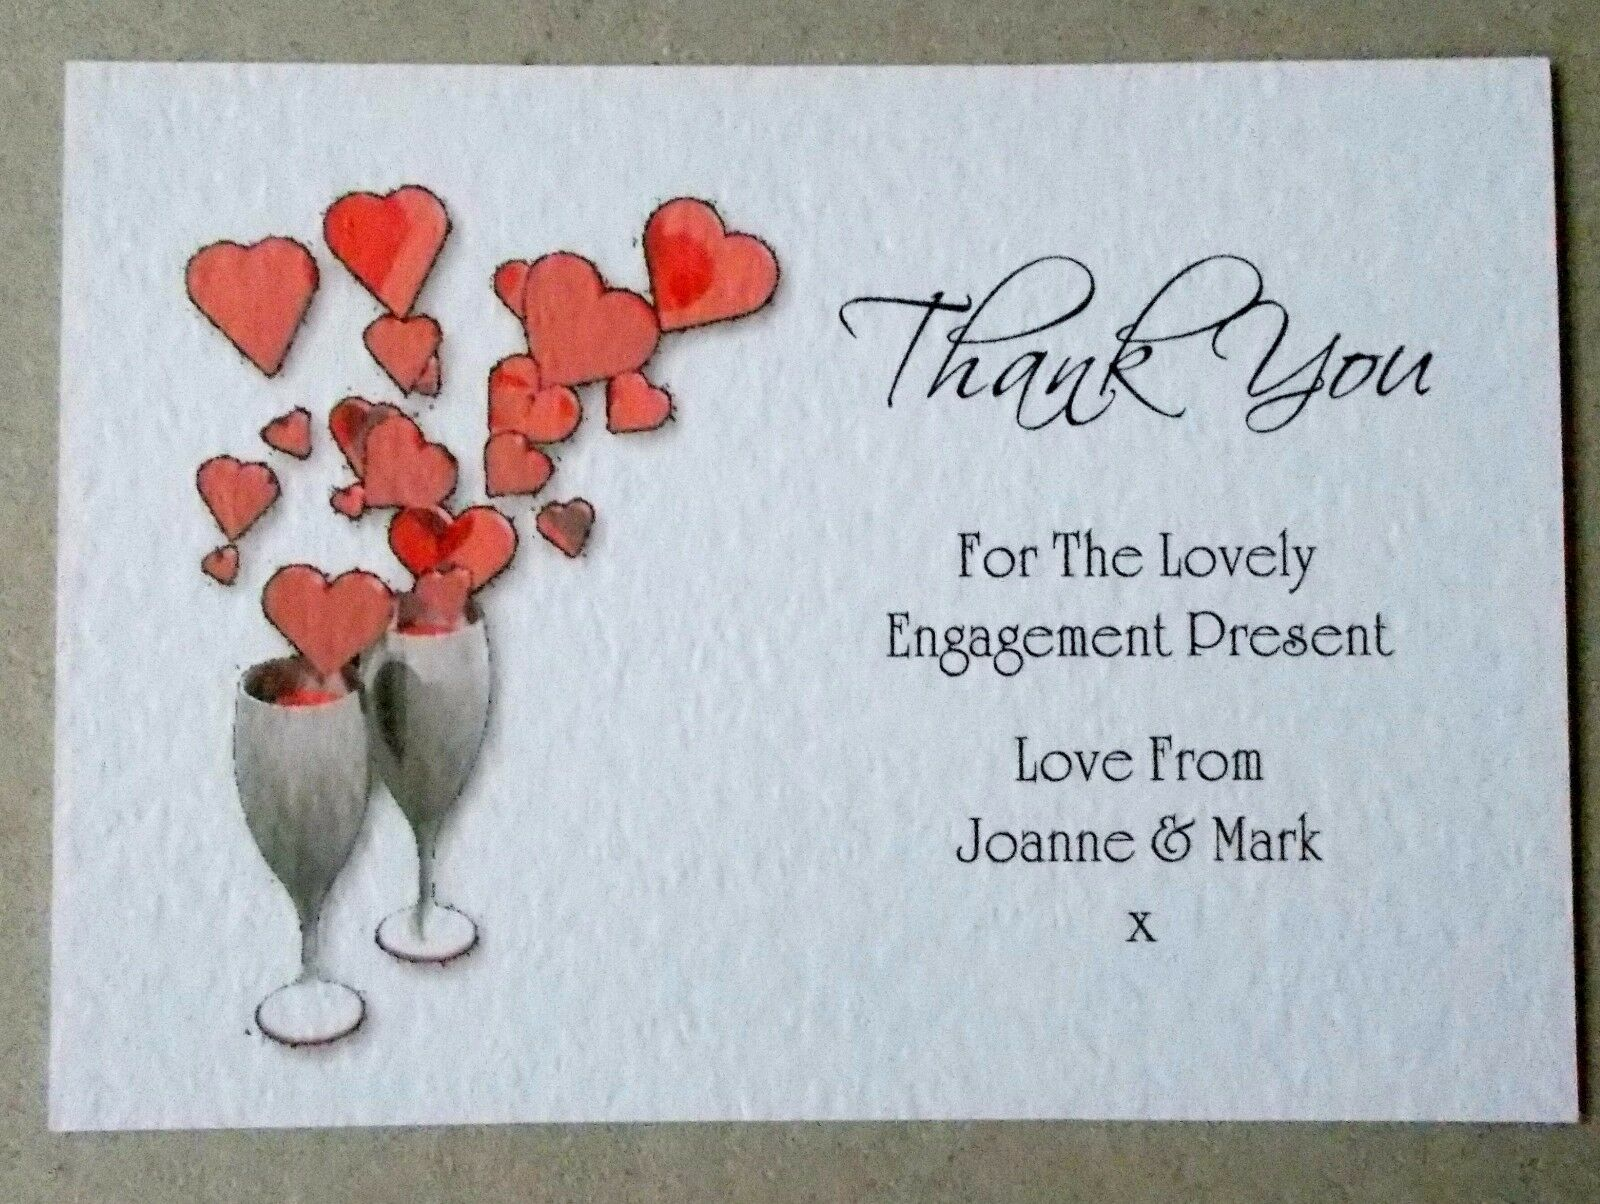 Personalised Engagement Thank You Cards 5 10 15 20 25 25 25 30 35 40 45 50 to 100 SG aac76d